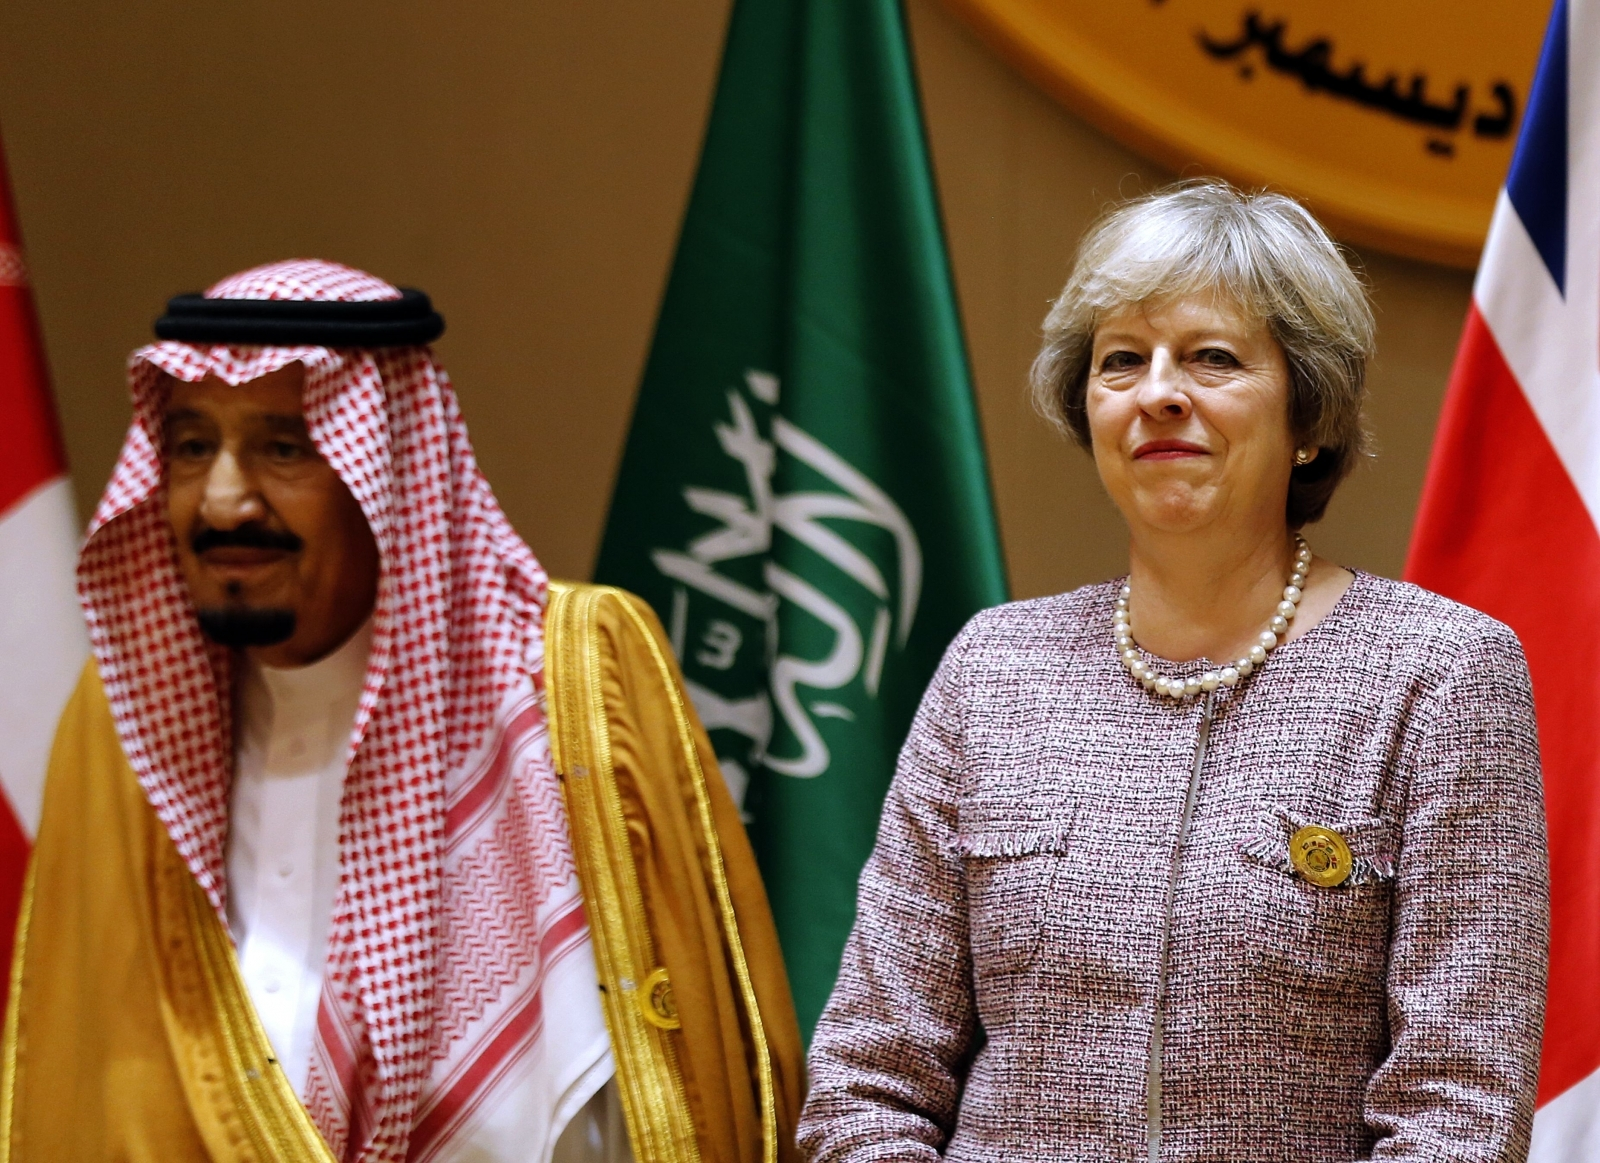 King Salman Theresa May